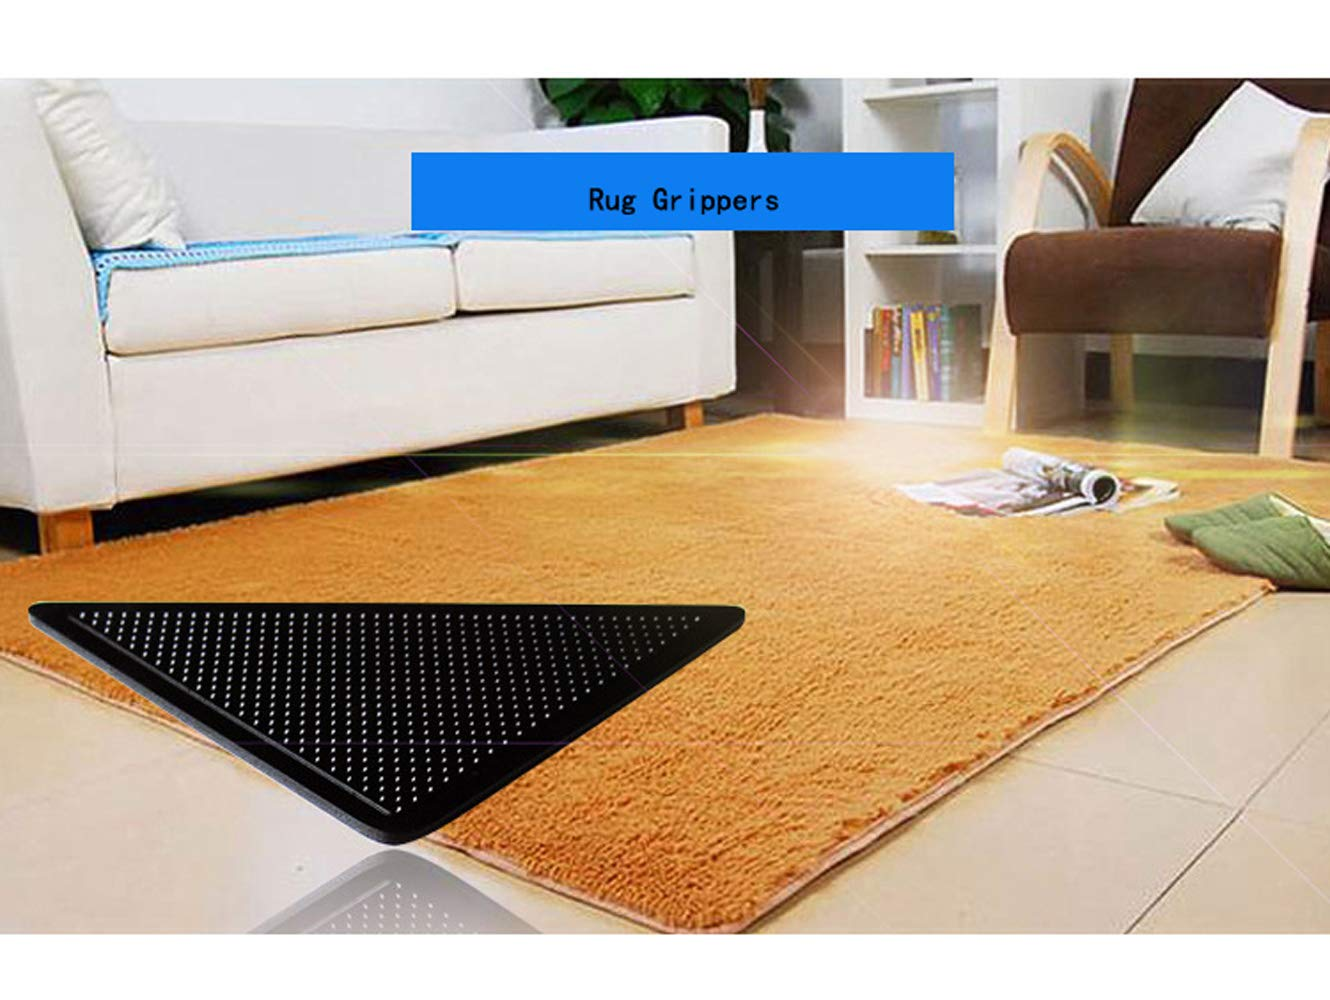 Rug Grippers for Hardwood Floors Carpet Gripper for Area Rug Gripper Pads Non Slip Rug Pad Double Sided Anti Curling Rug Tape Washable and Renewable Carpet Gripper Skid Tape for Tile Floors Mat 8